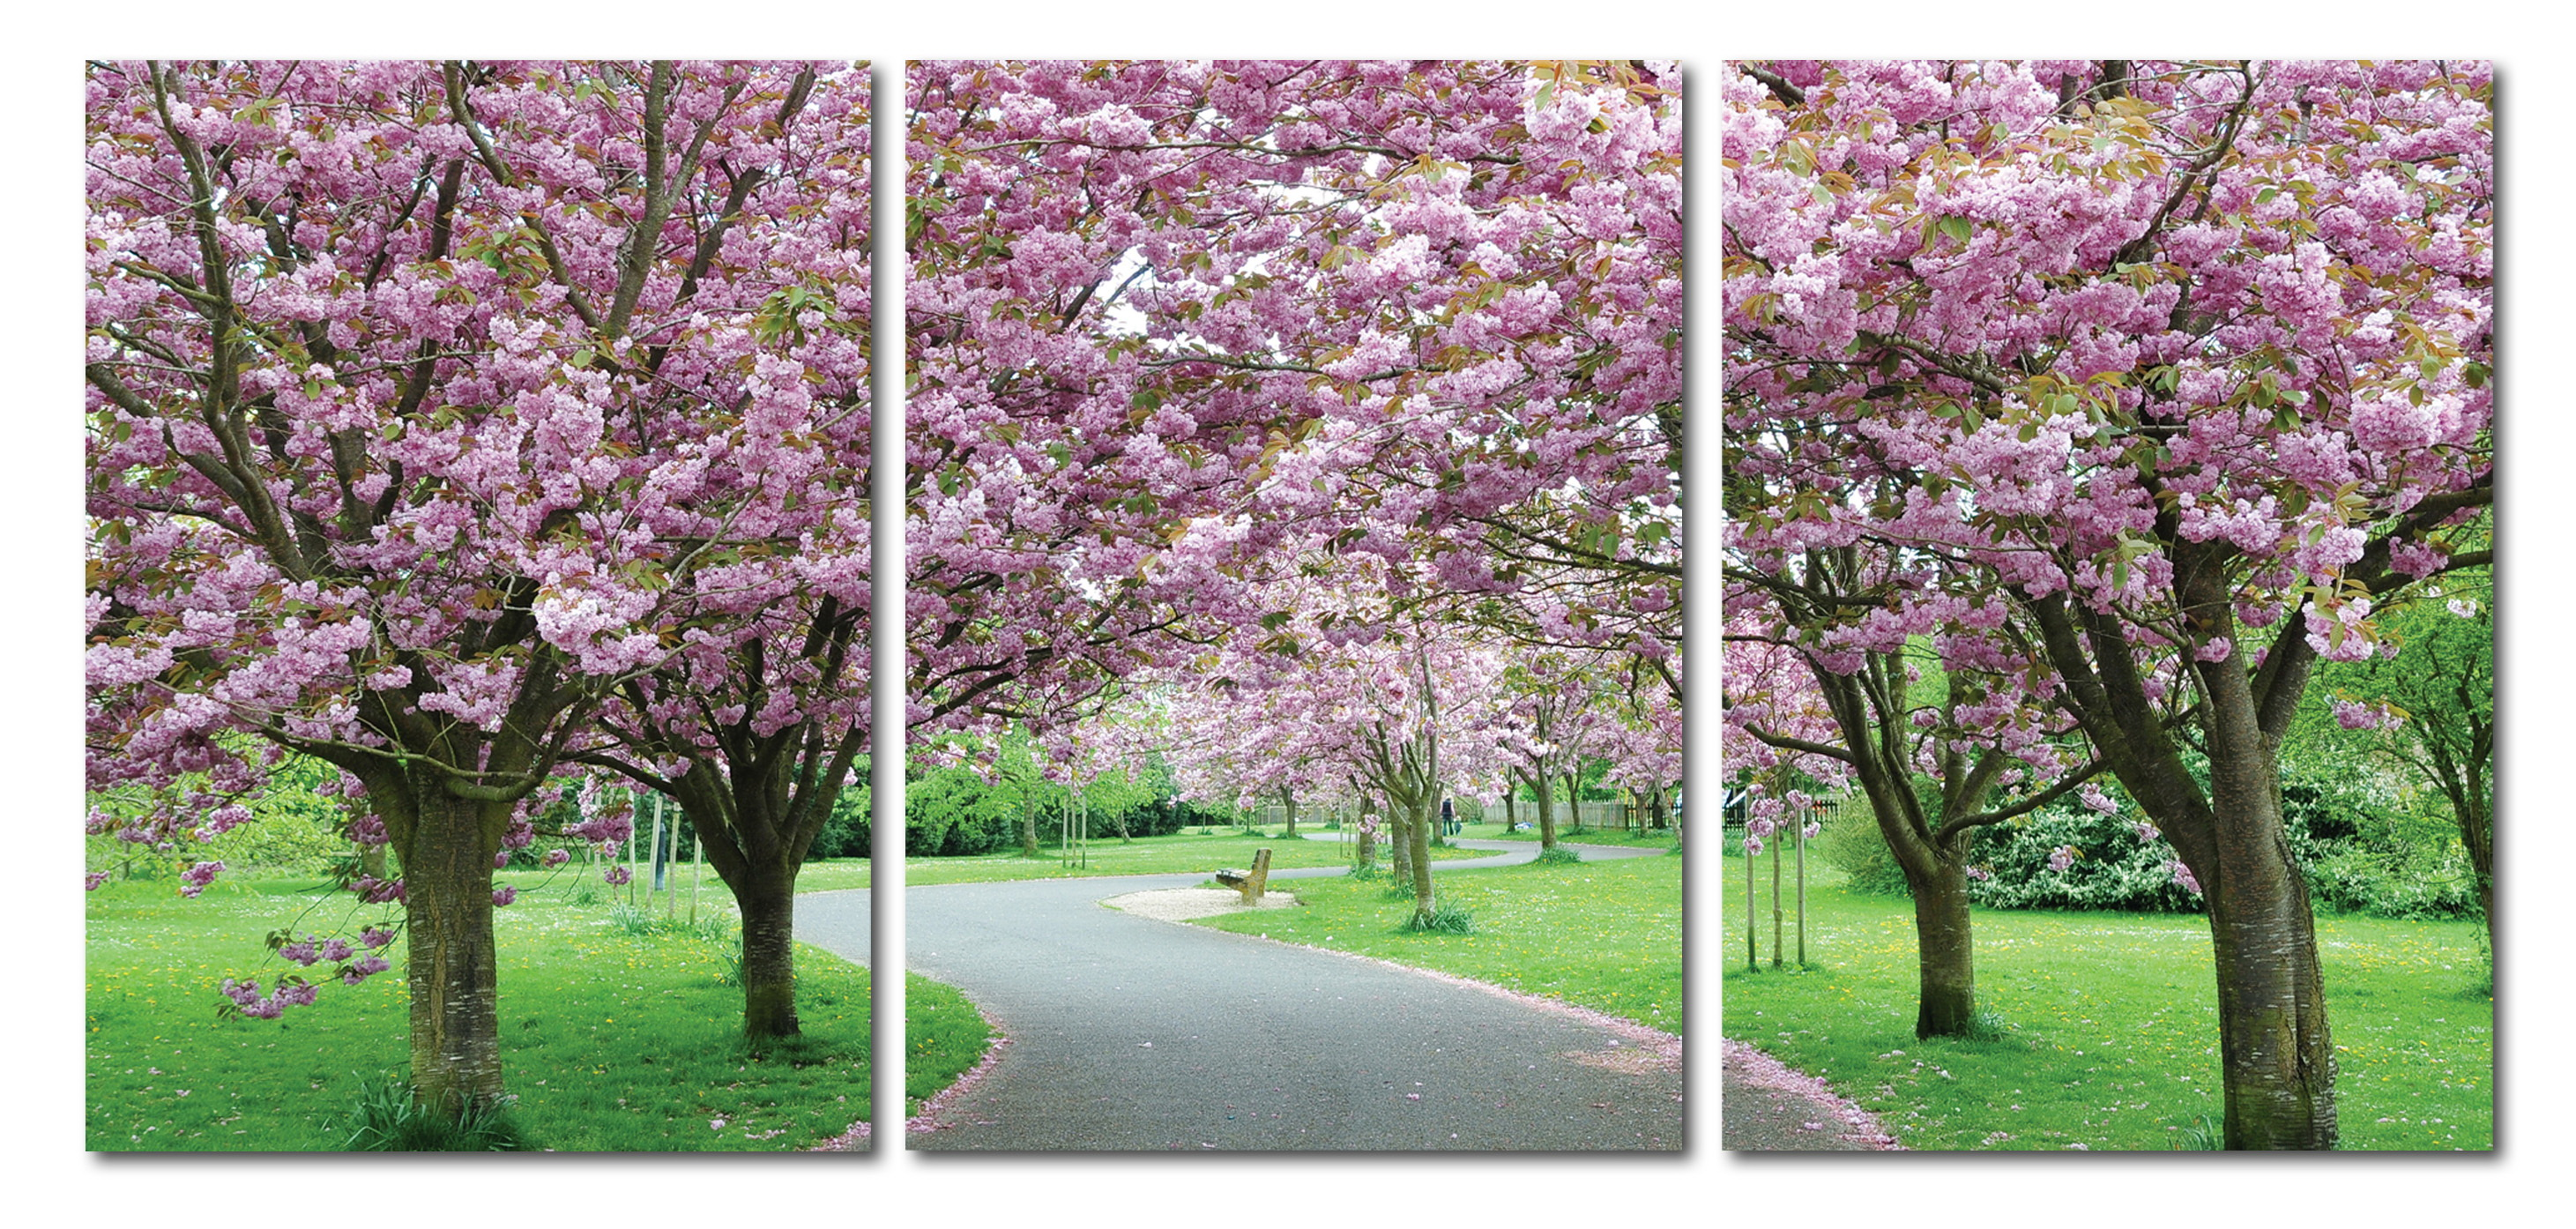 Baxton Studio Spring in Bloom Mounted Photography Print Triptych